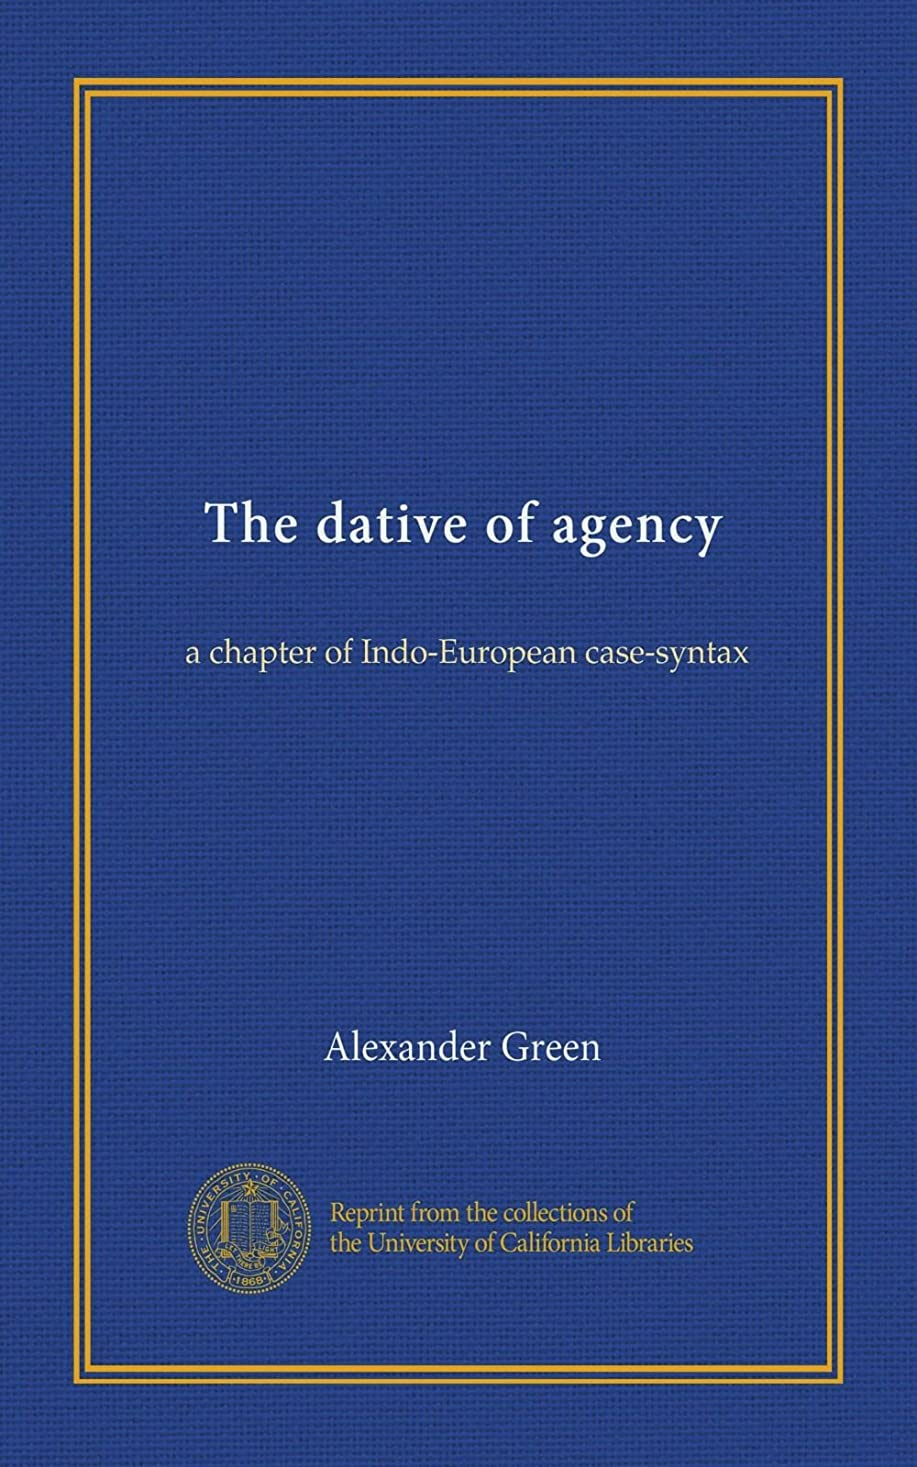 ランドリー思い出すエスカレーターThe dative of agency: a chapter of Indo-European case-syntax